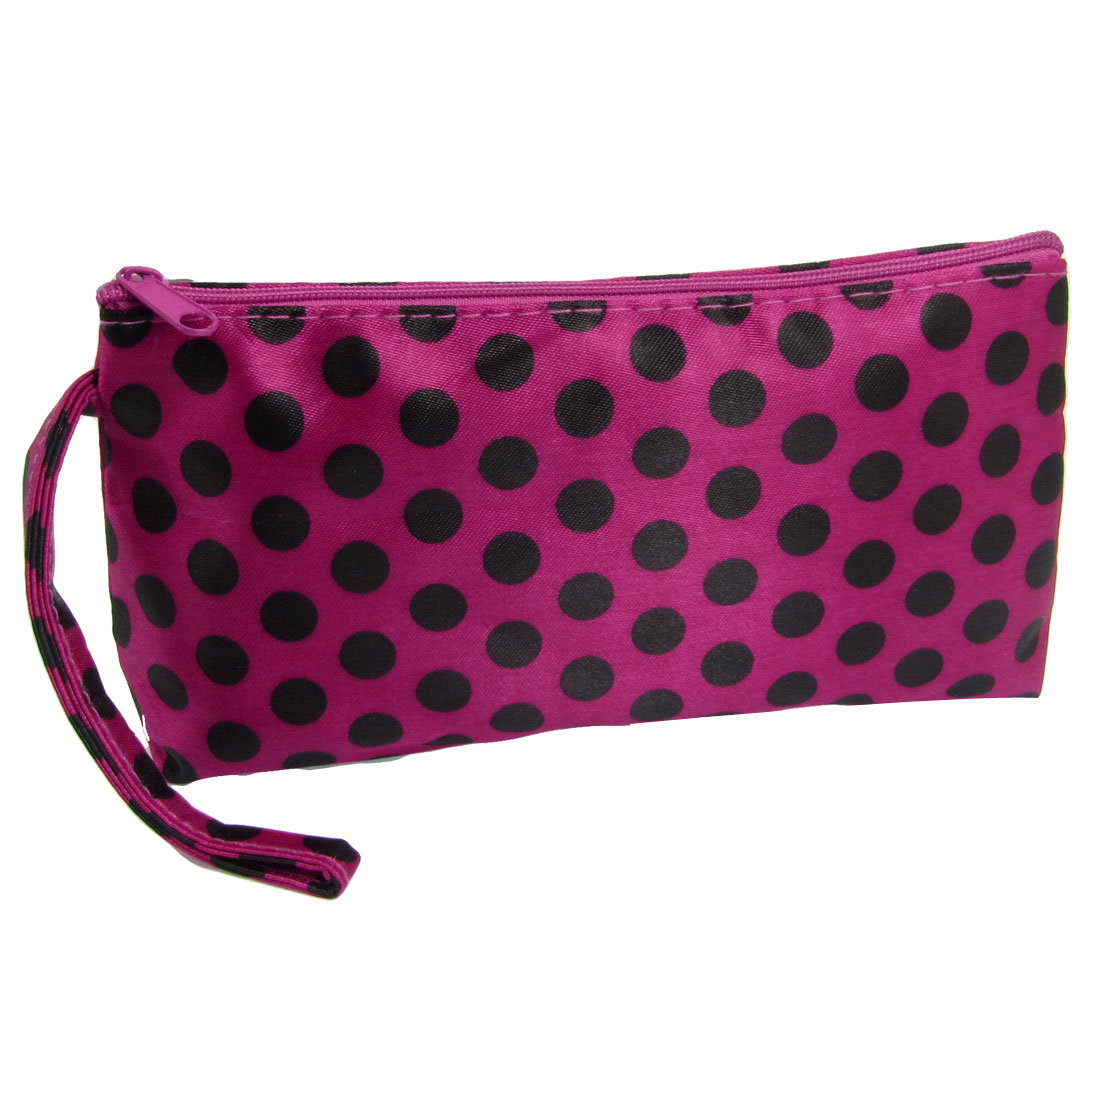 Zipped Up Black Dots Print Mirror Lipstick Cosmetic Holder Bag for Lady